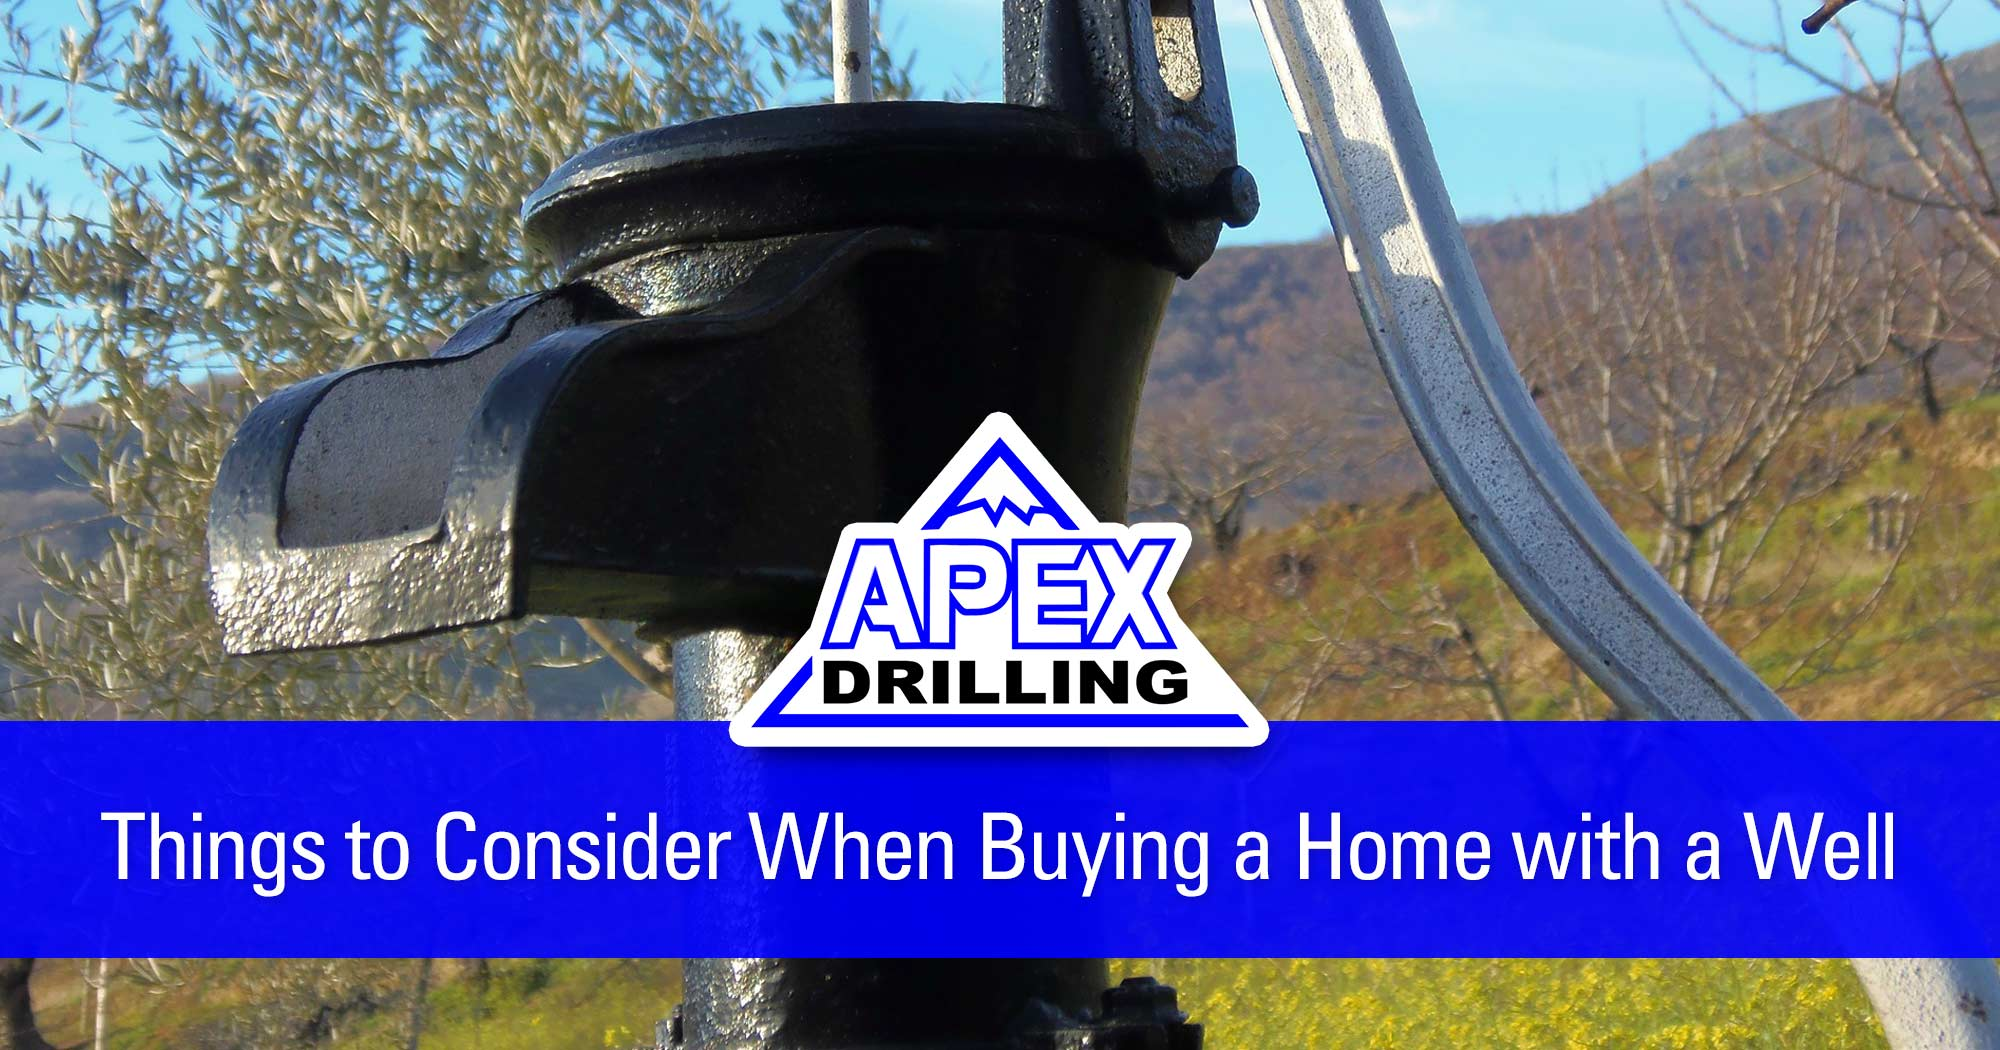 Things to Consider When Buying a Home with a Well